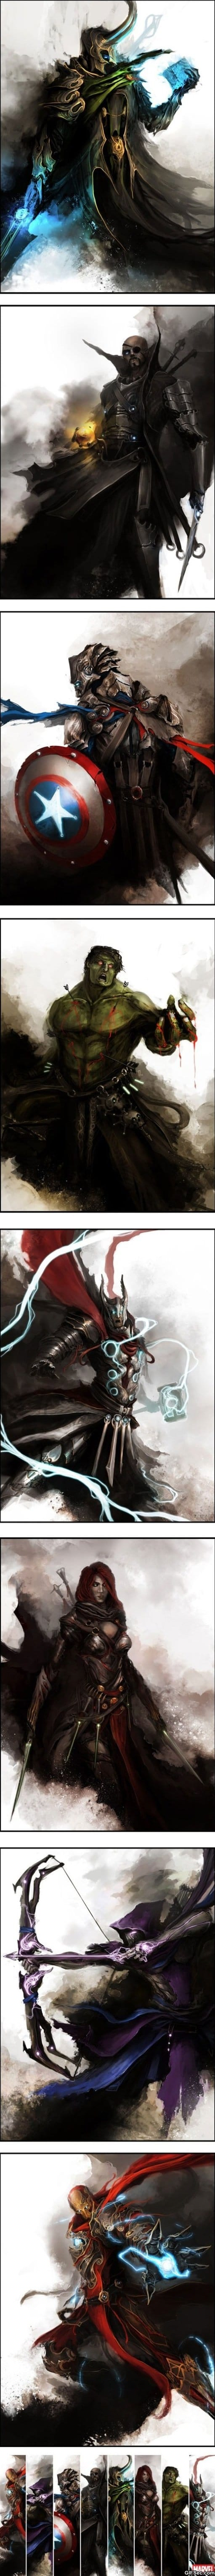 the-avengers-medieval-fantasy-style